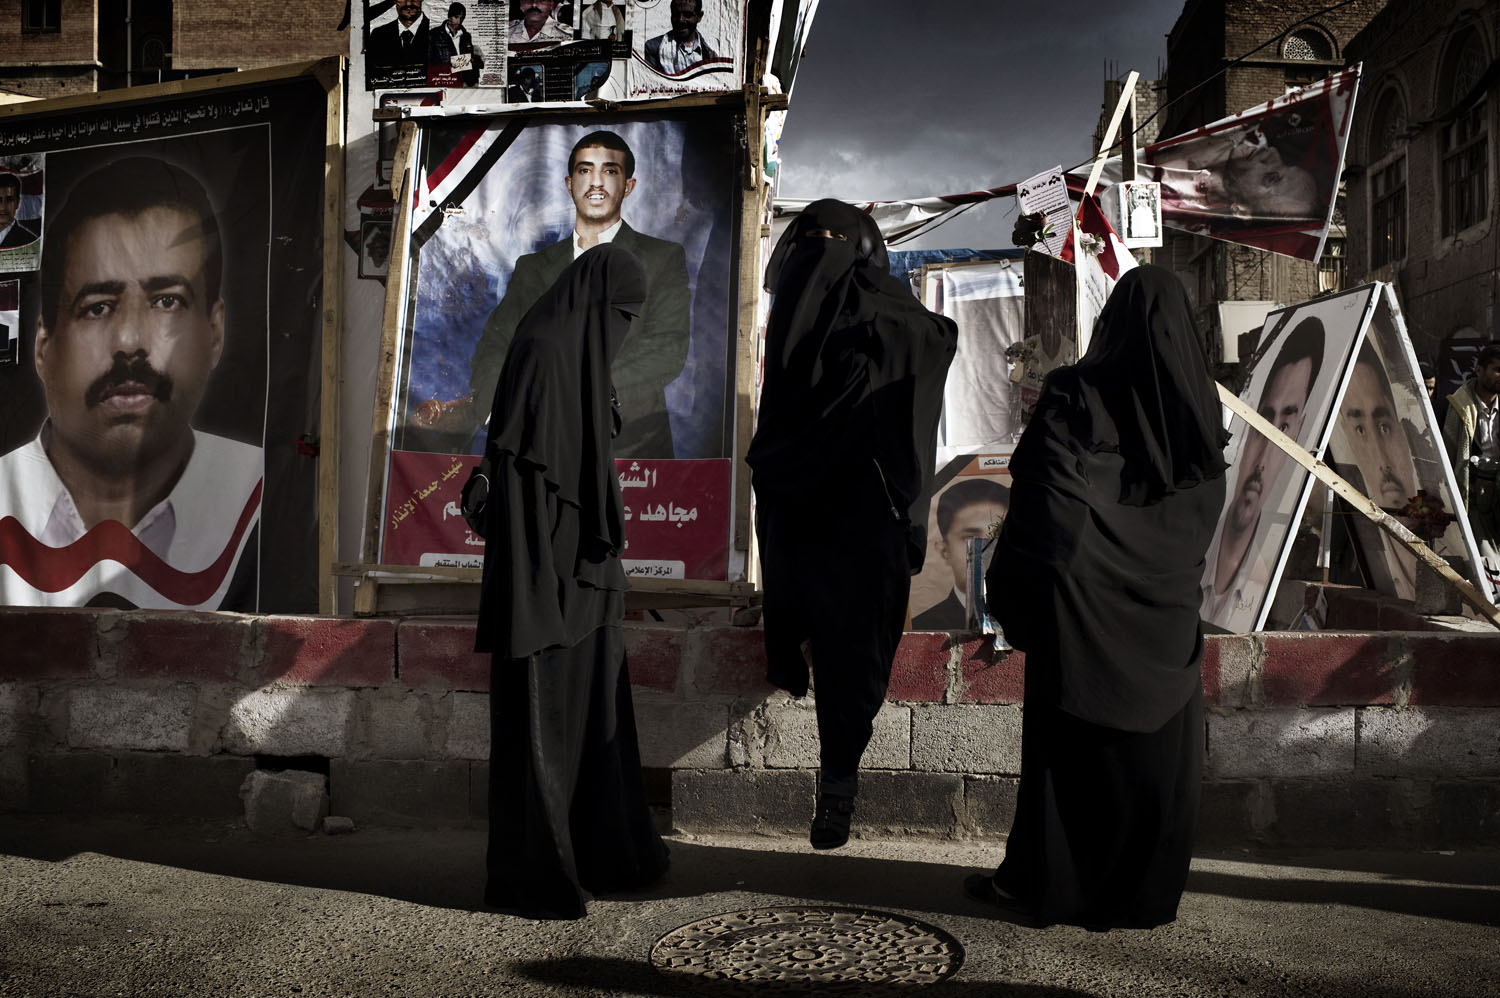 Yemeni women visit the shrine of deceased protesters in a tent city outside of the university, May 17, 2011.